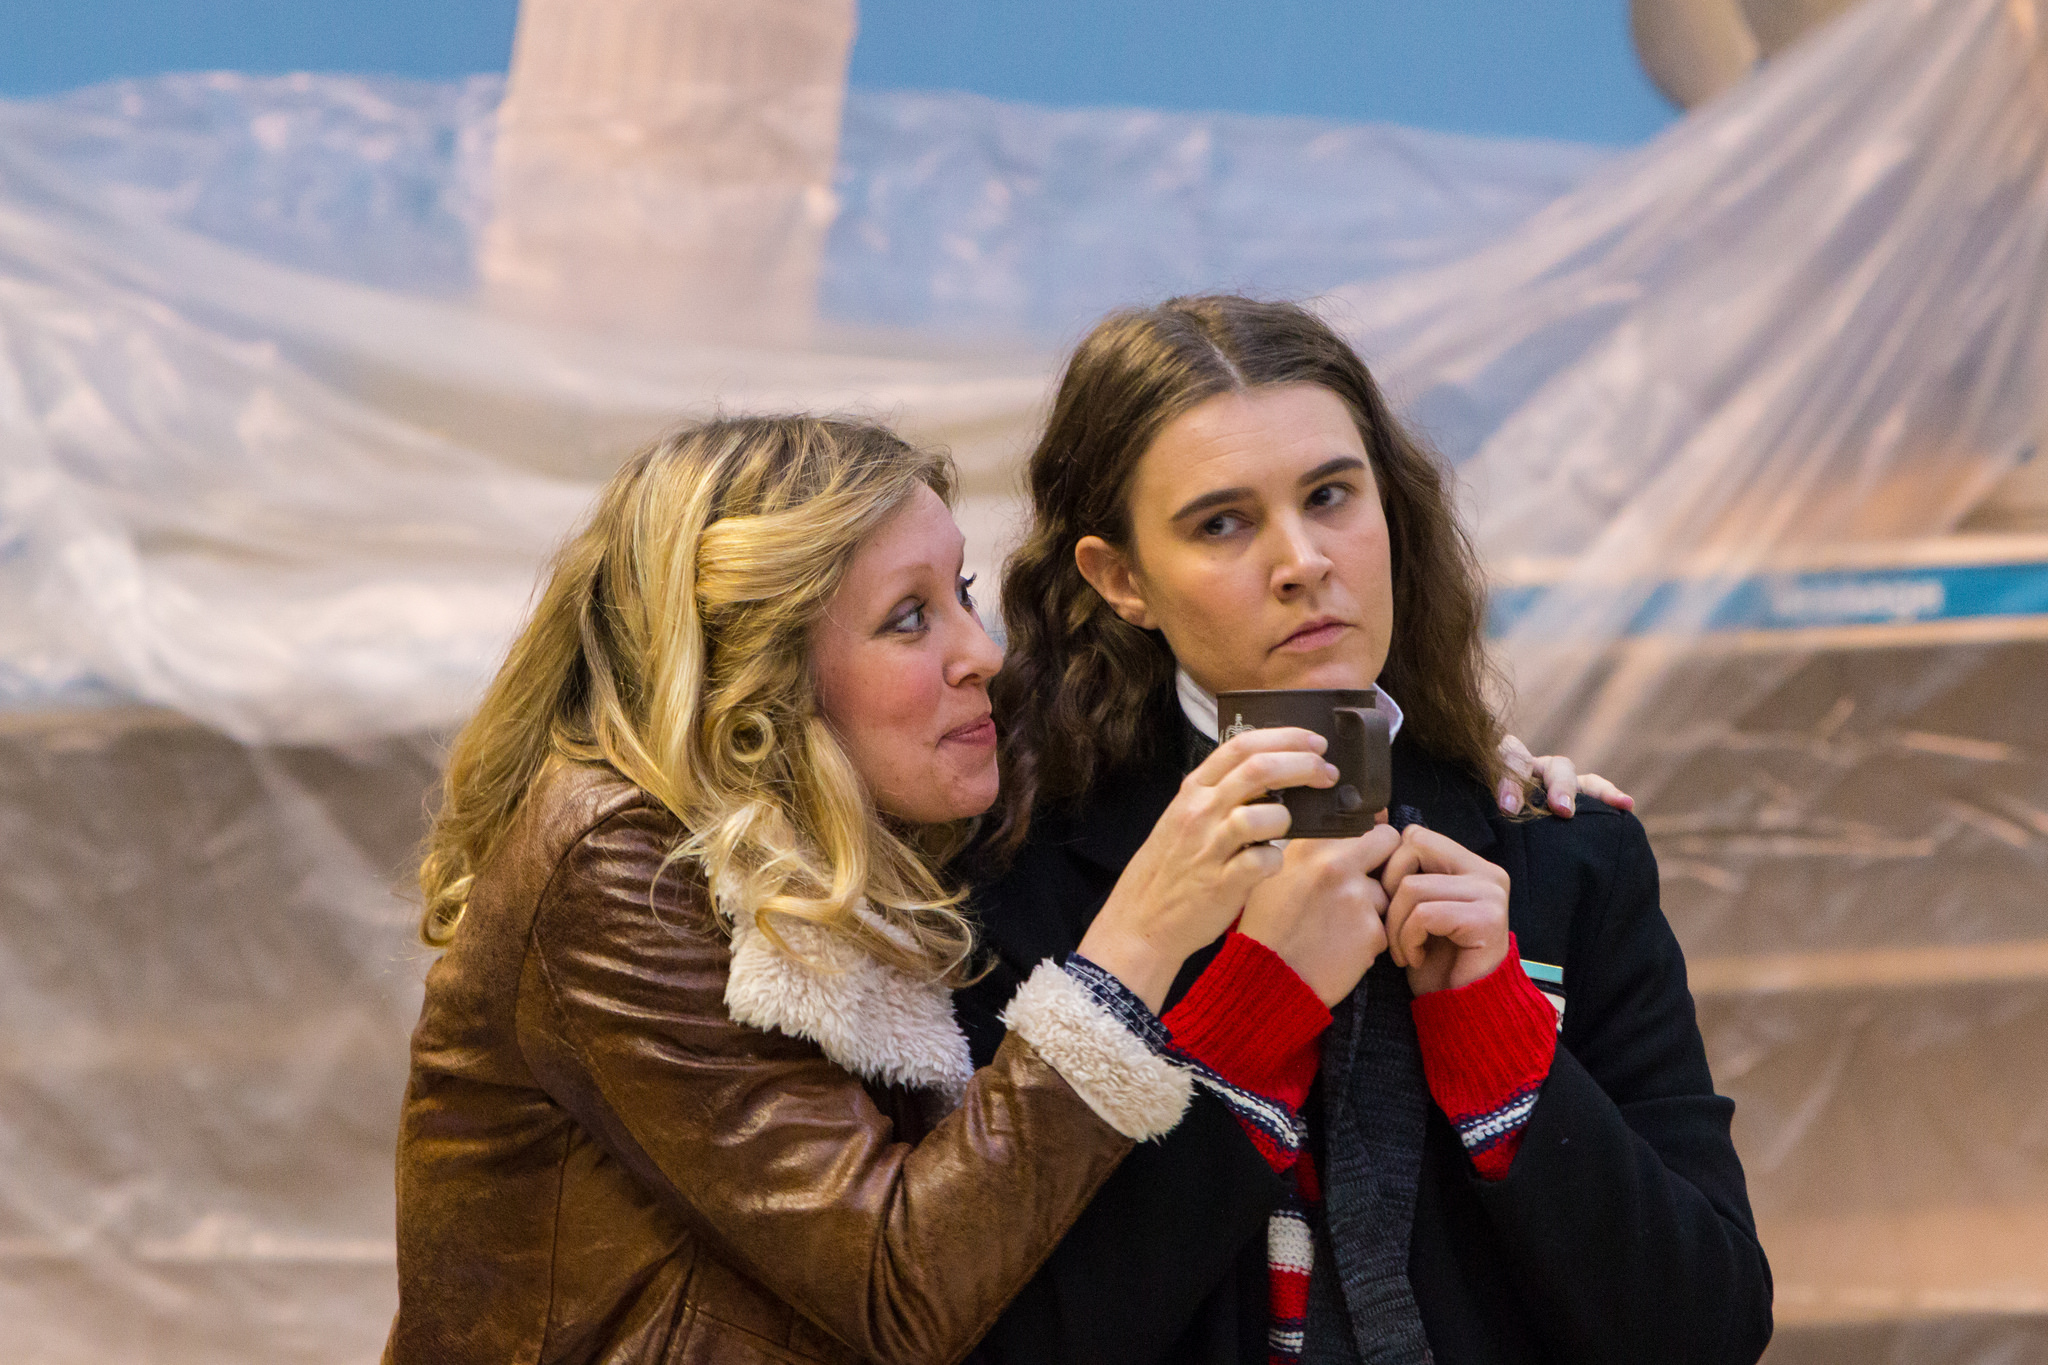 EMILY HEYWORTH AS SUSAN AND EMILY SPOWAGE AS MARY WINTER (LEFT TO RIGHT). PHOTO: NICOLAS CHINARDET